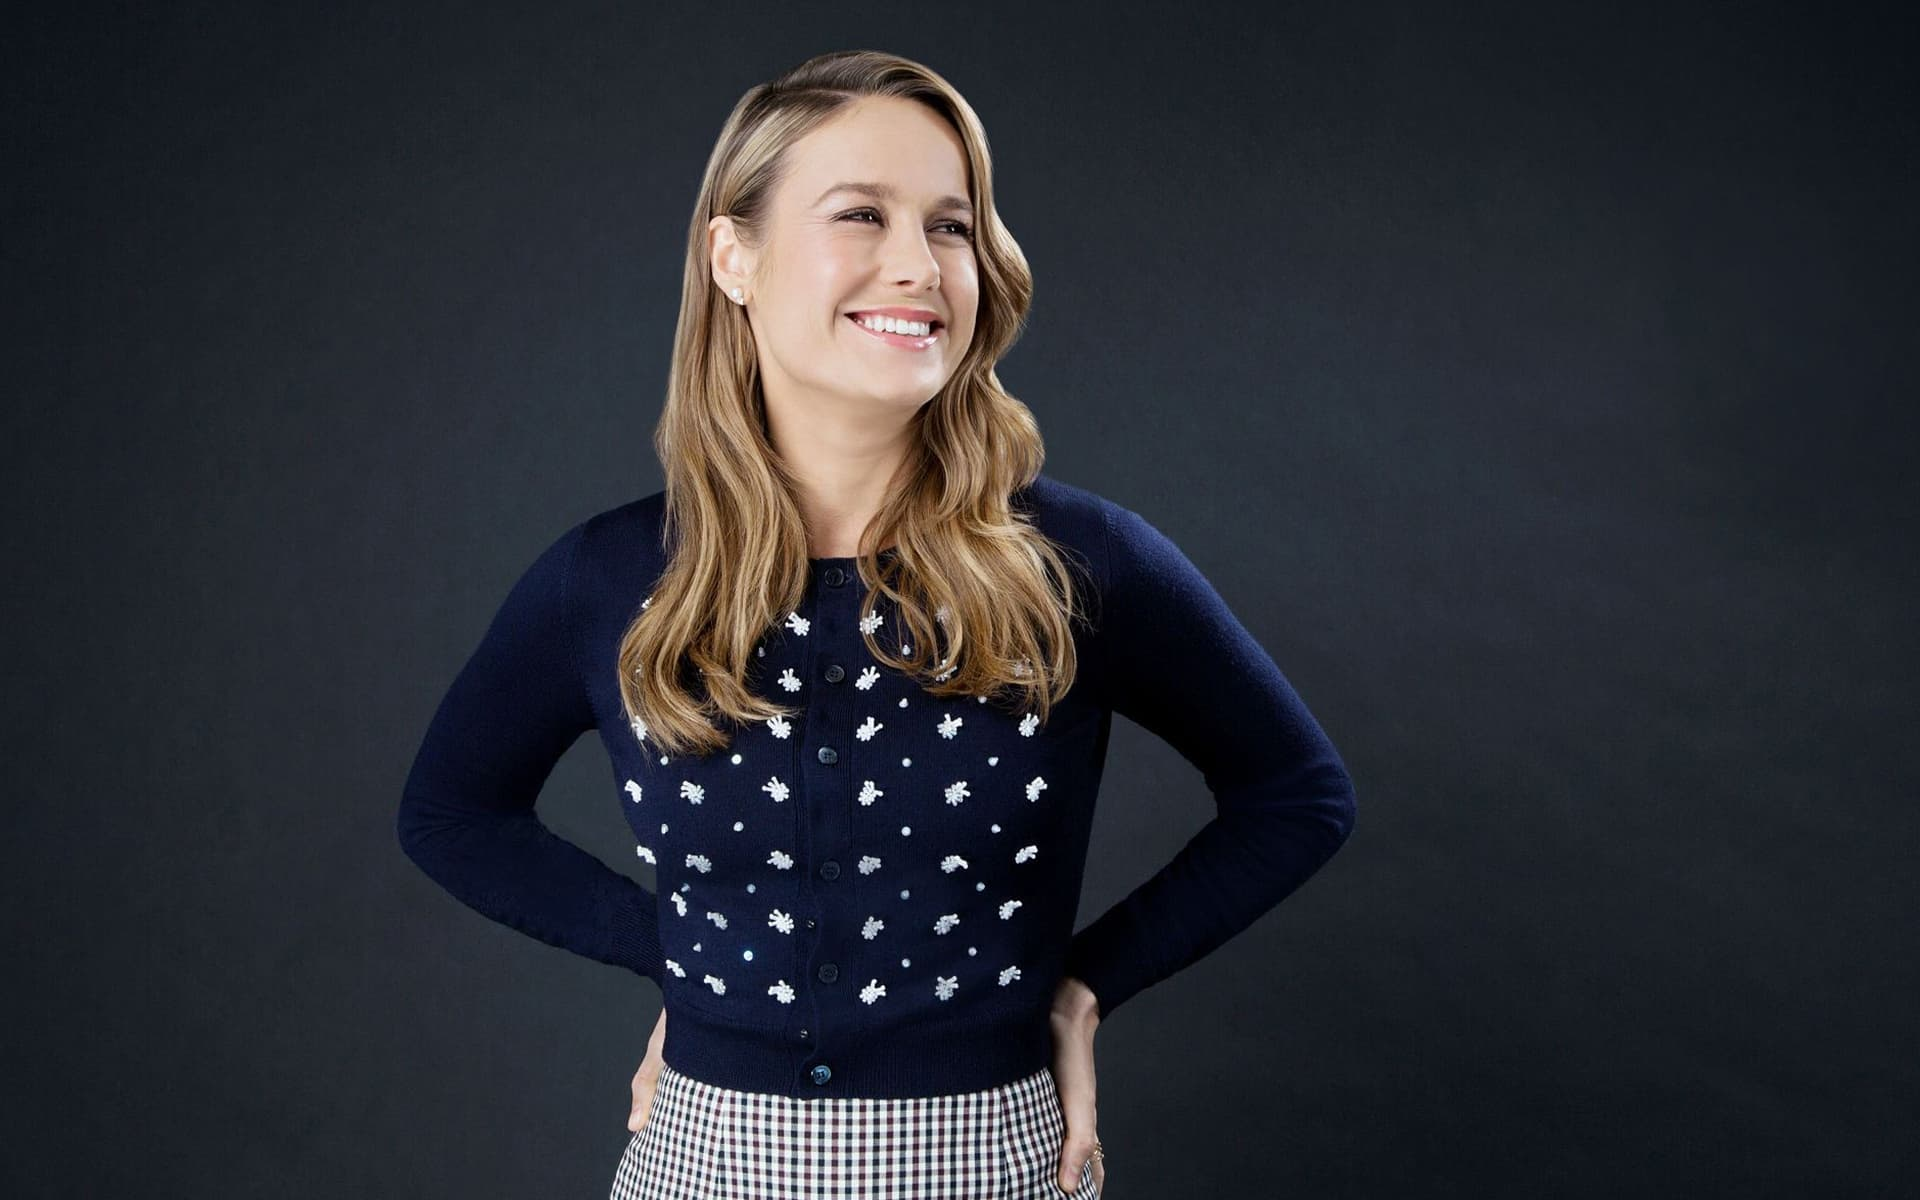 Brie Larson Gallery: Brie Larson Wallpapers, Pictures, Images